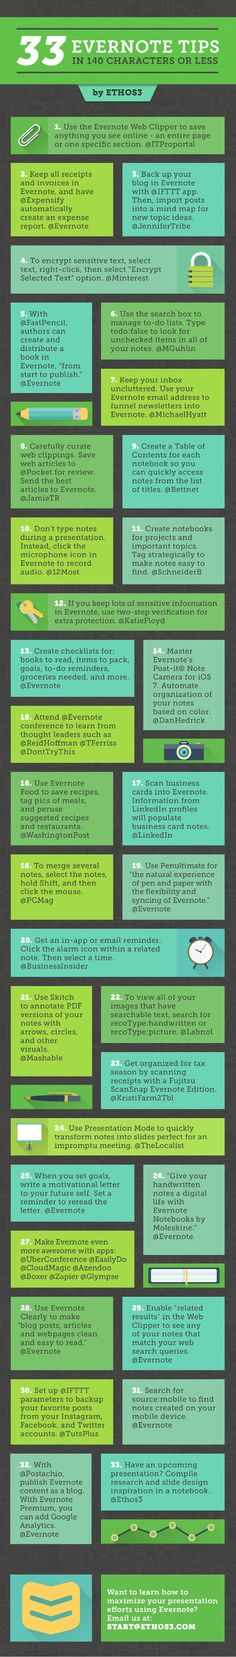 Beetje voor gevorderden maar toch: 33 Evernote Tips, in 140 characters or less by Ethos3 | Presentation Design and Training via slideshare